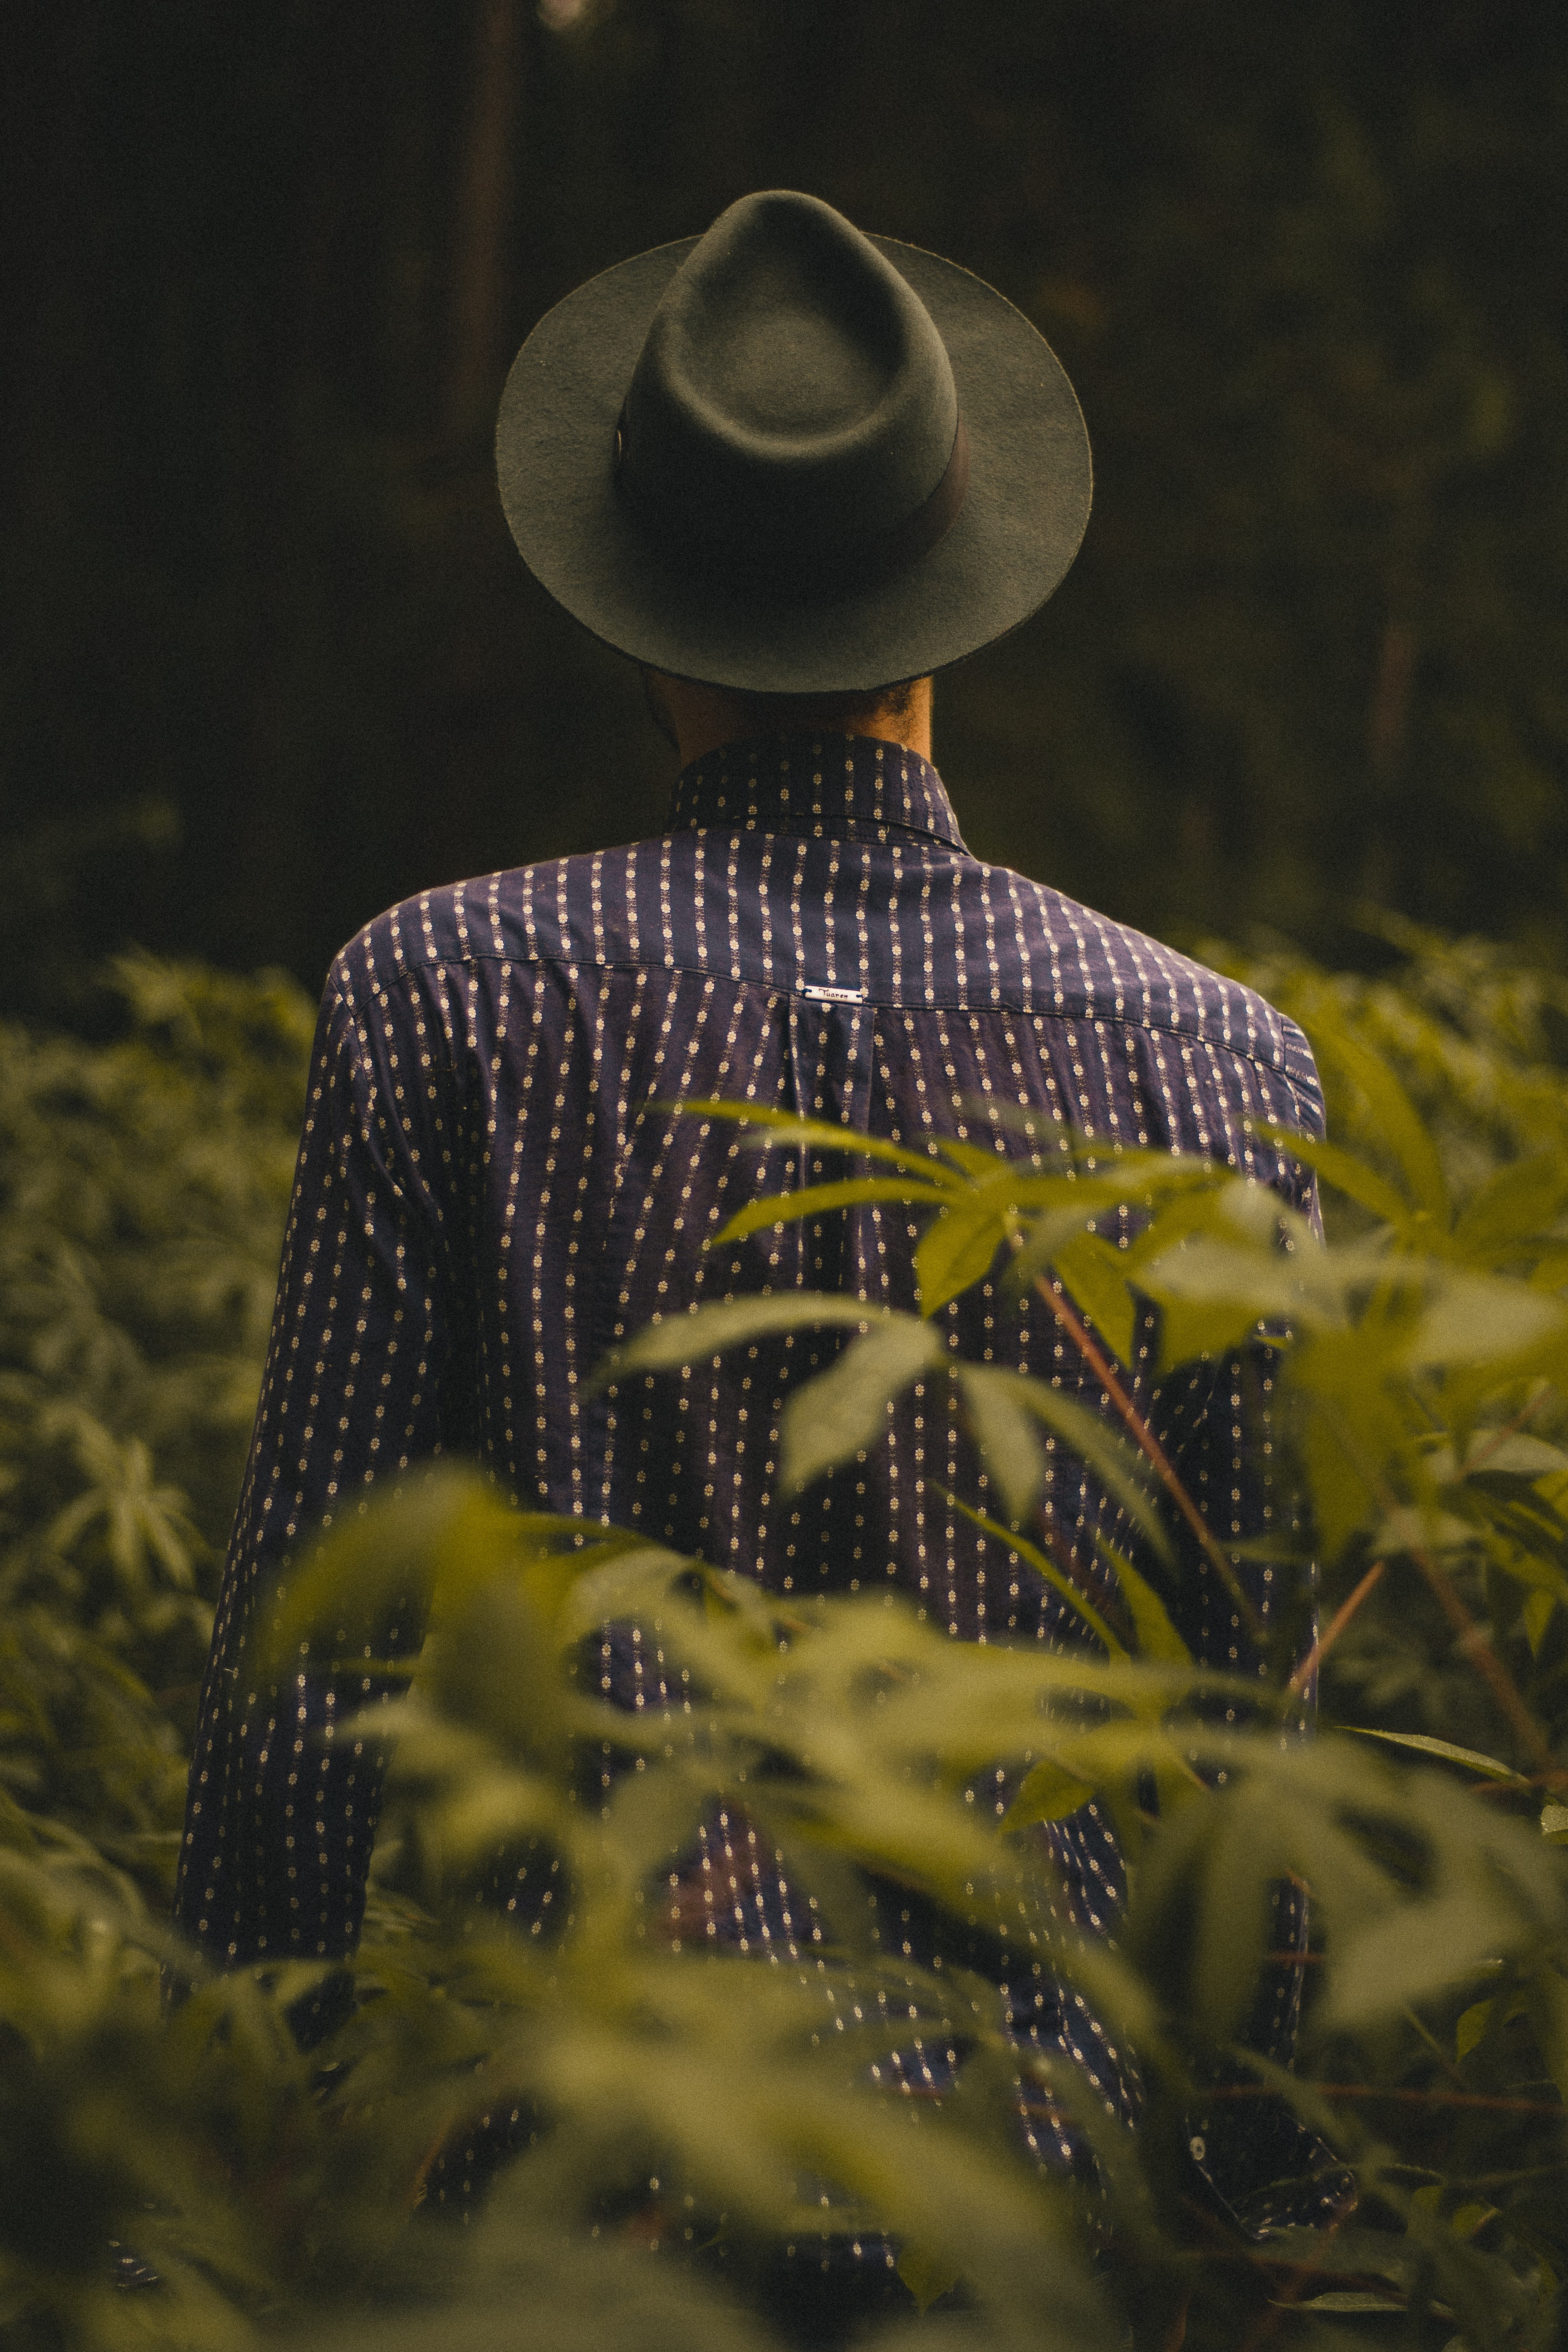 A person wearing a hat faces away from the camera among tall plants